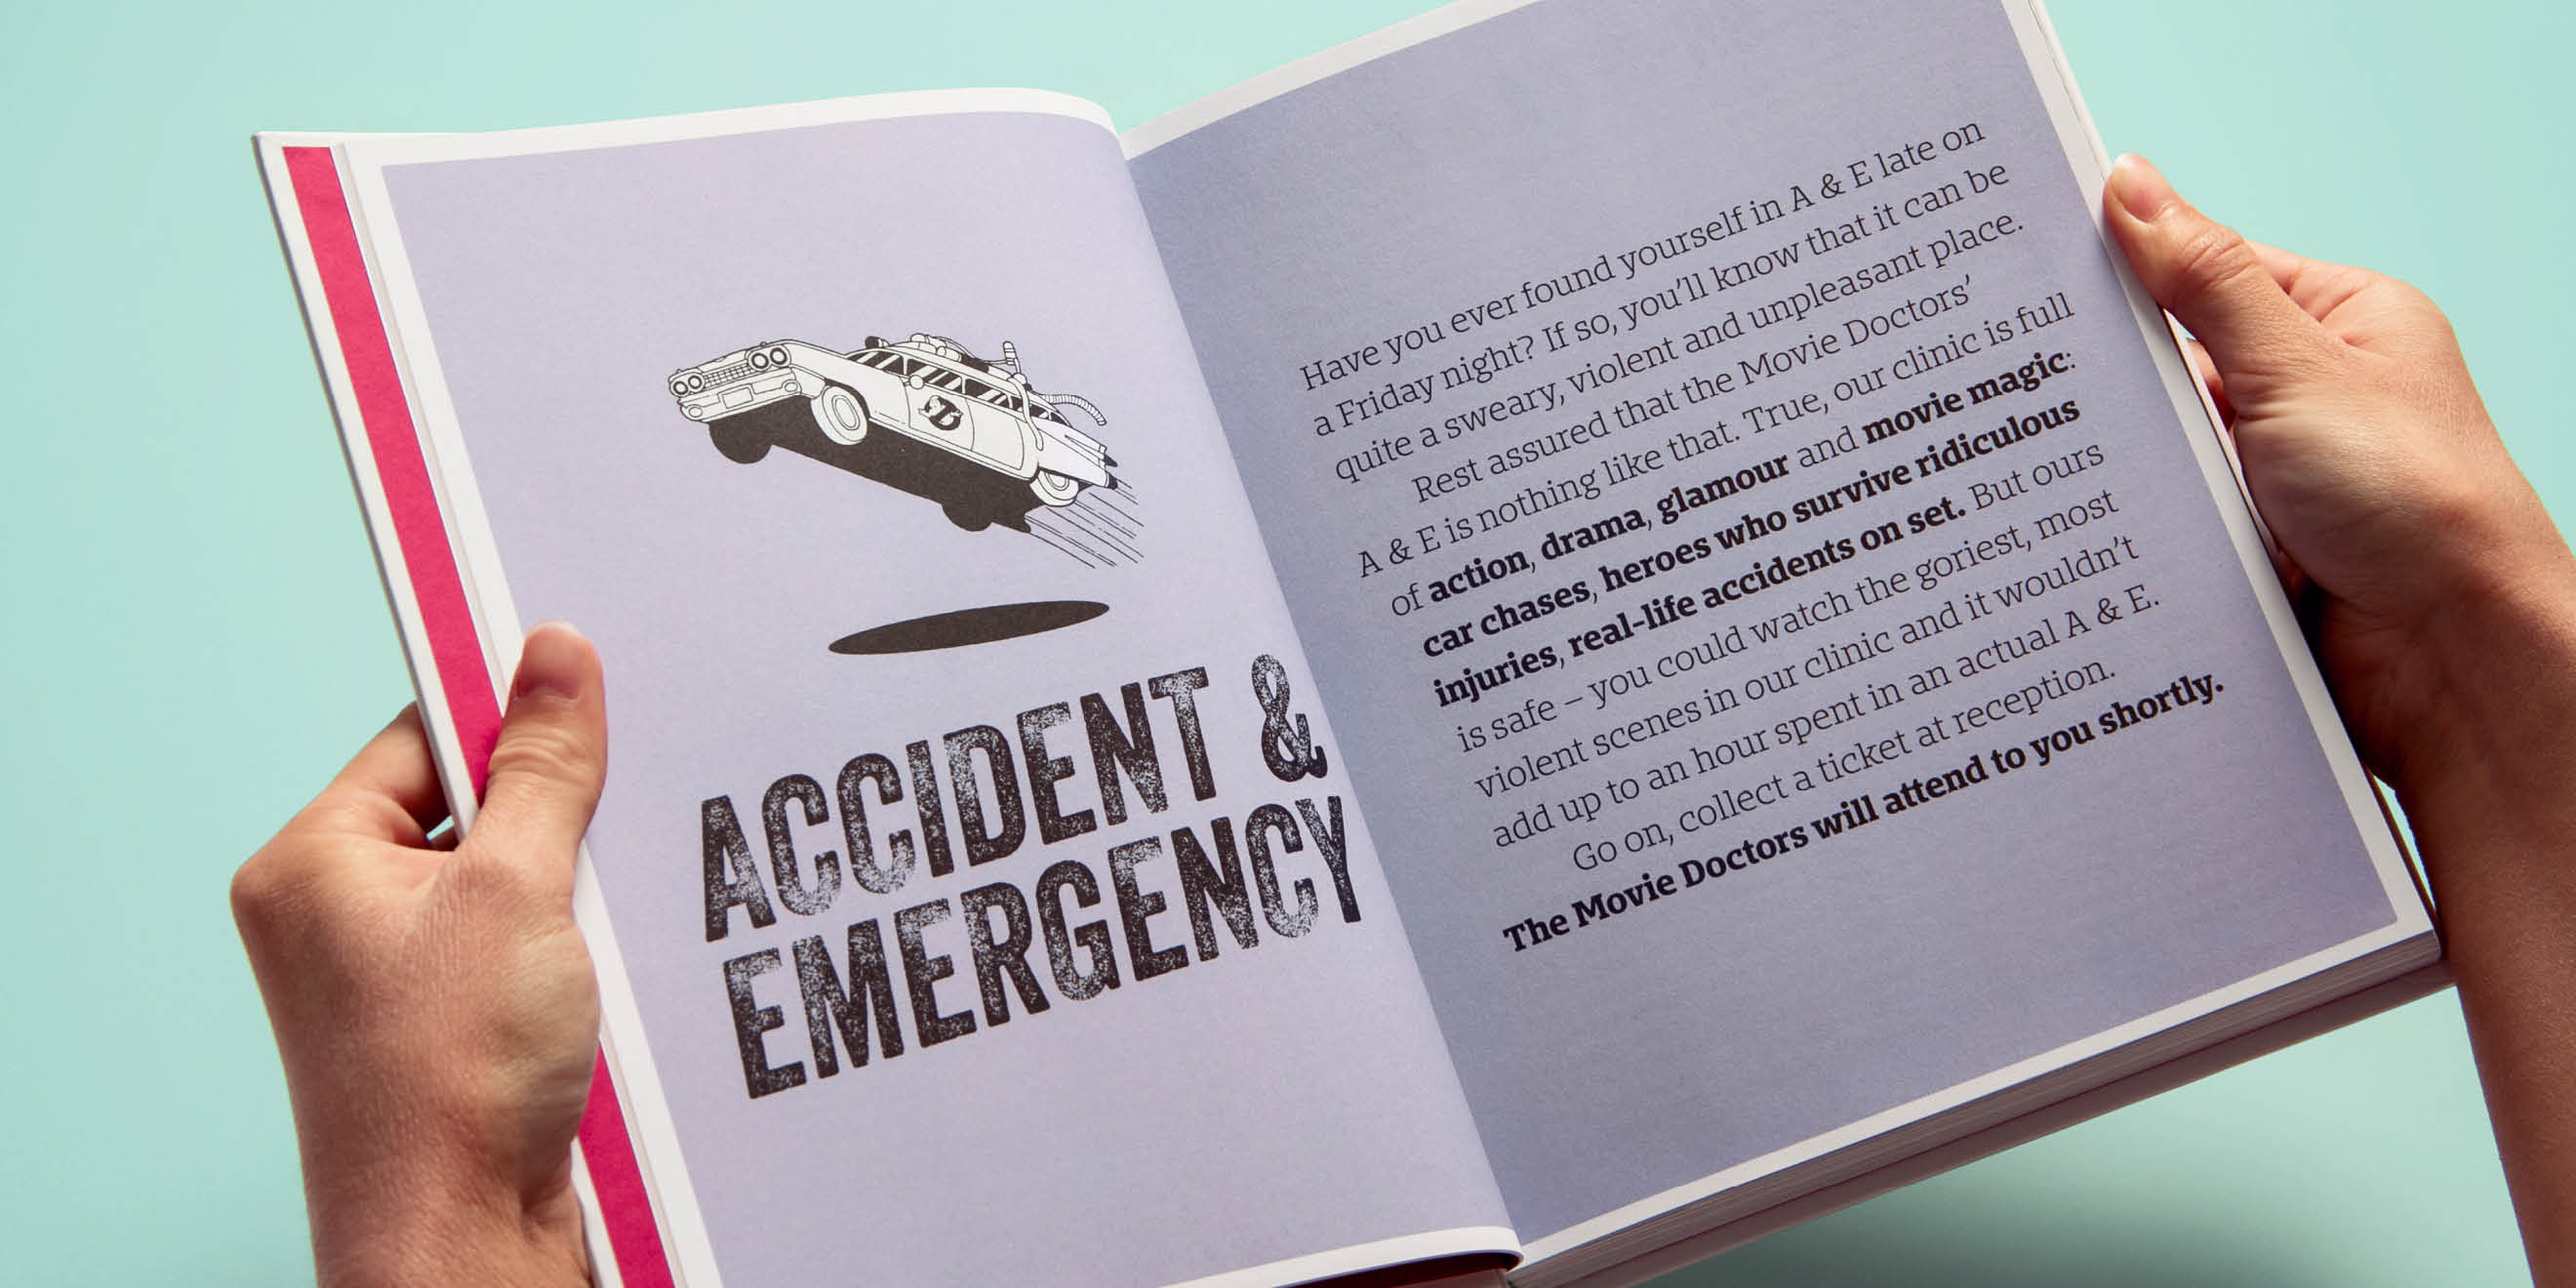 The Movie Doctors 'Accident & Emergency' page design